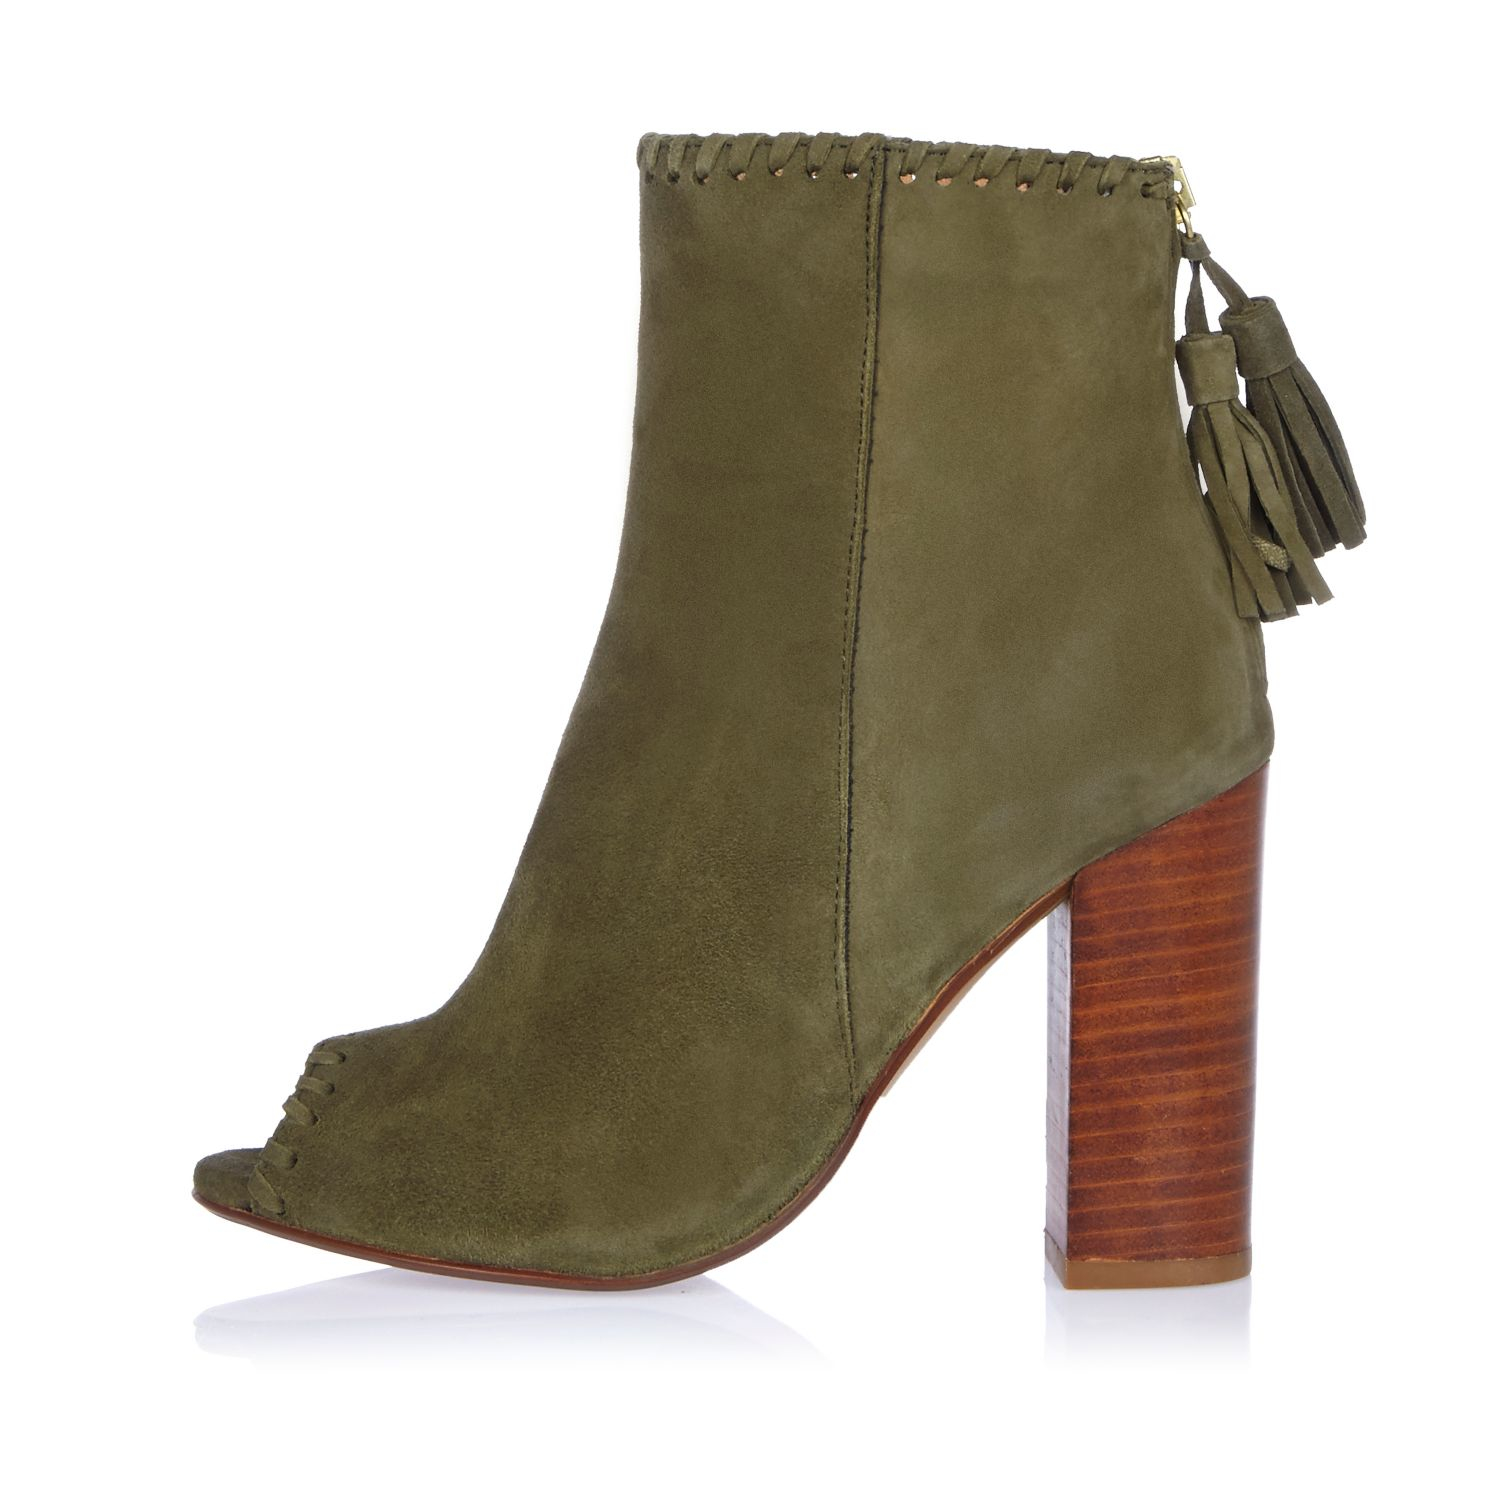 River Island Khaki Suede Peep Toe Shoe Boot In Natural Lyst